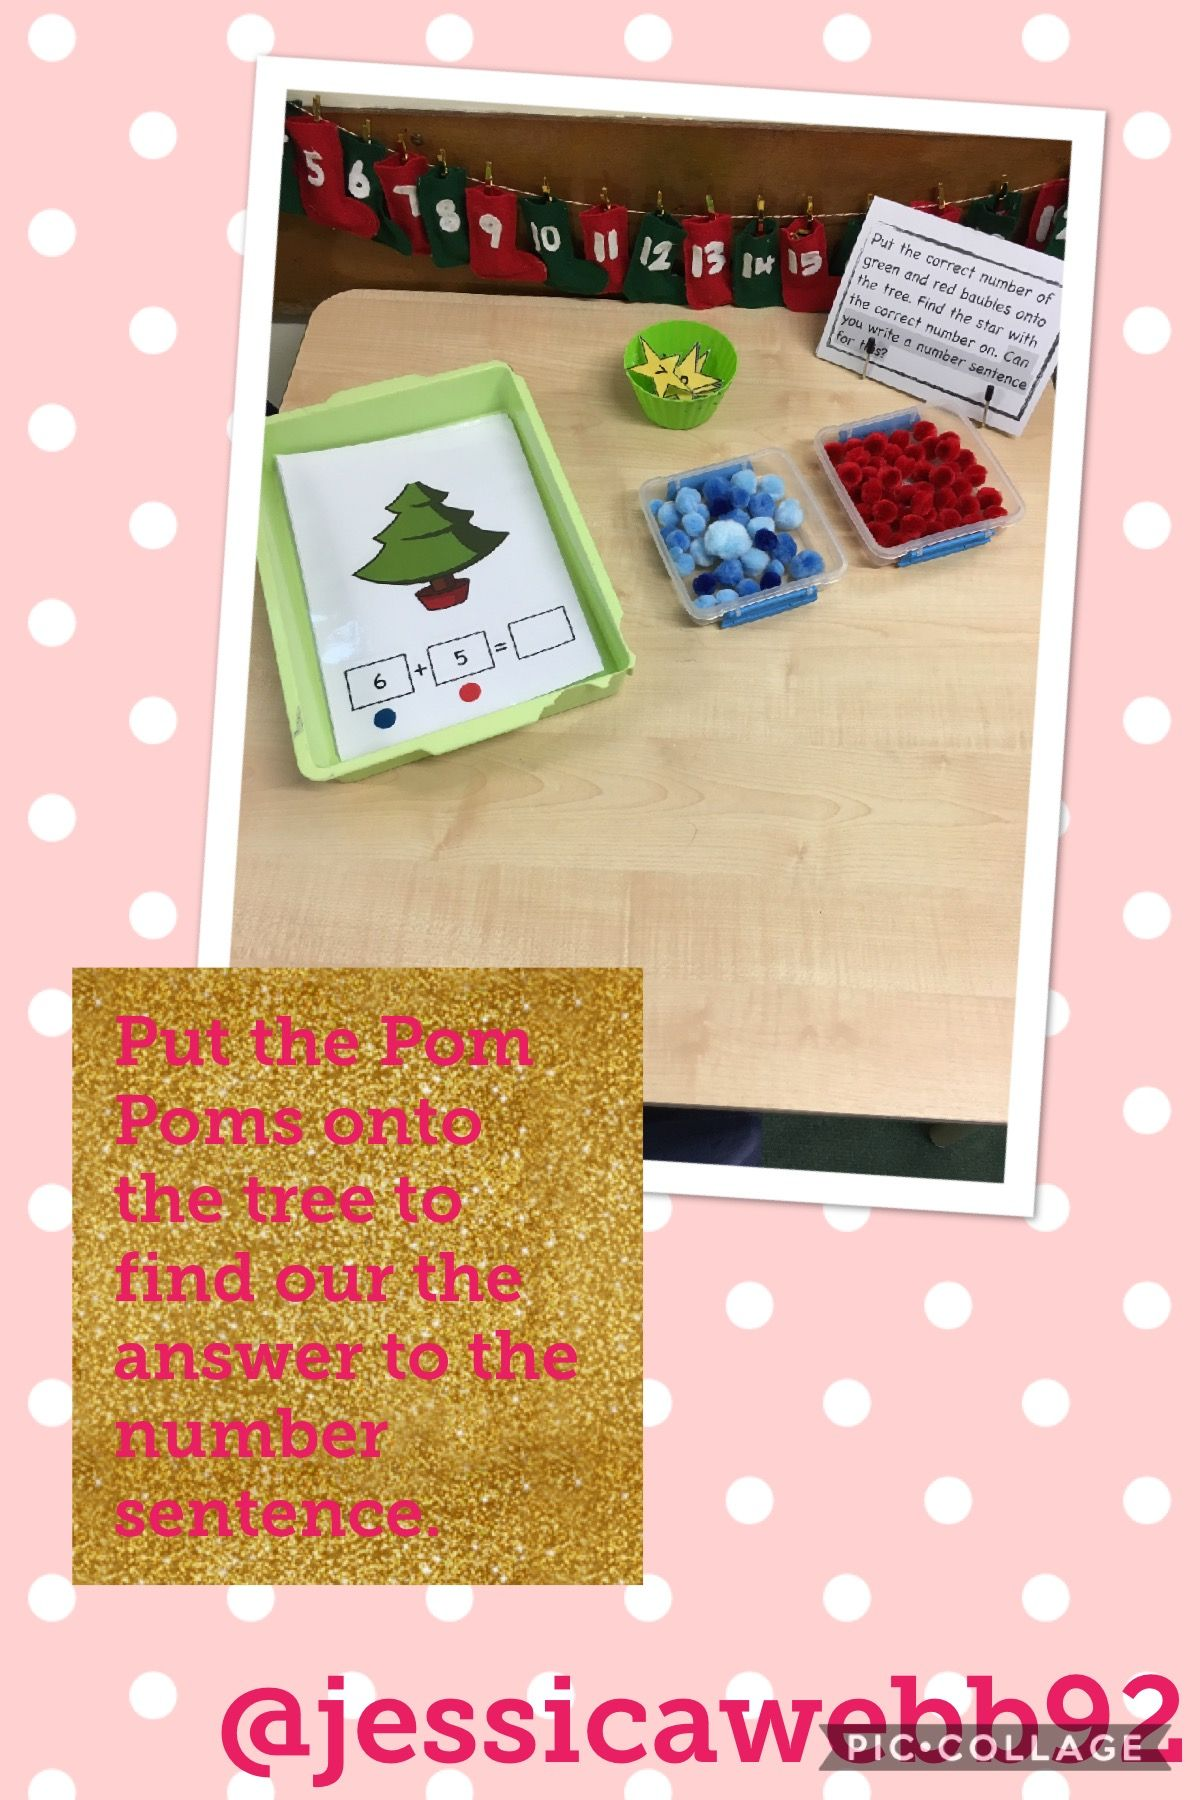 Use The Pom Poms To Find The Answer To The Number Sentence